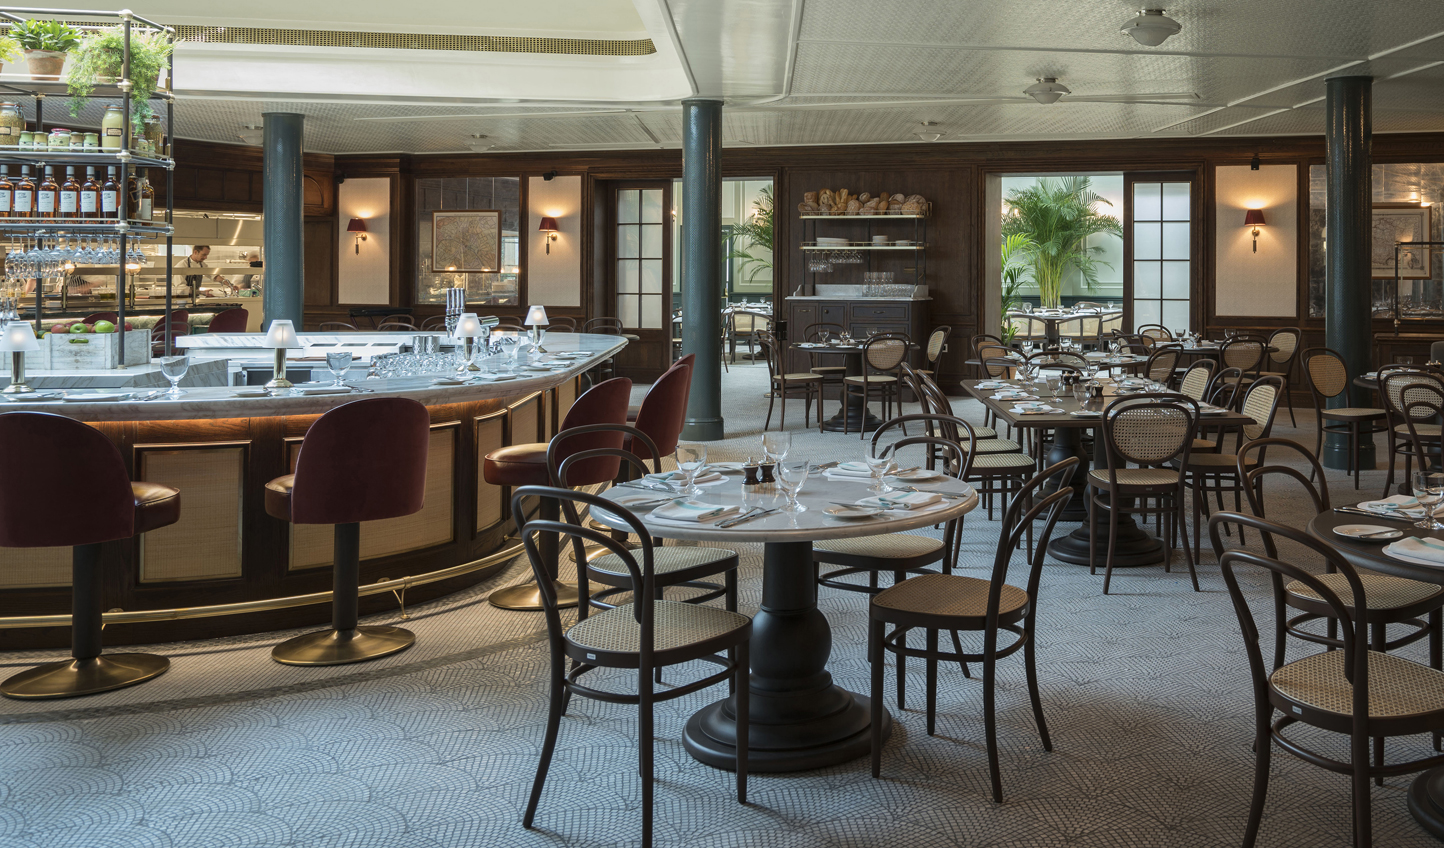 Grab a bite to eat at the Birnam Brasserie